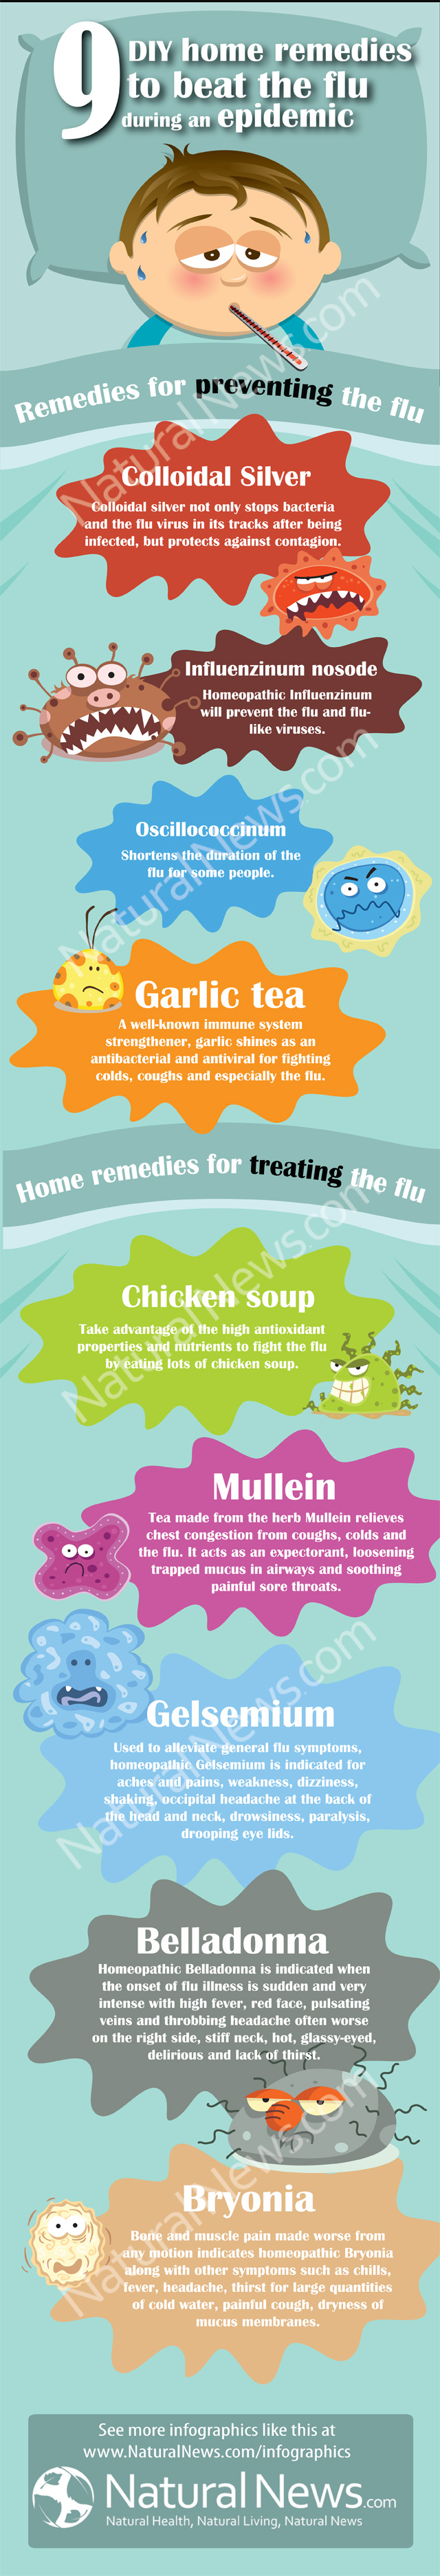 DIY Home Remedies to beat the Flu [Infographic] | ecogreenlove